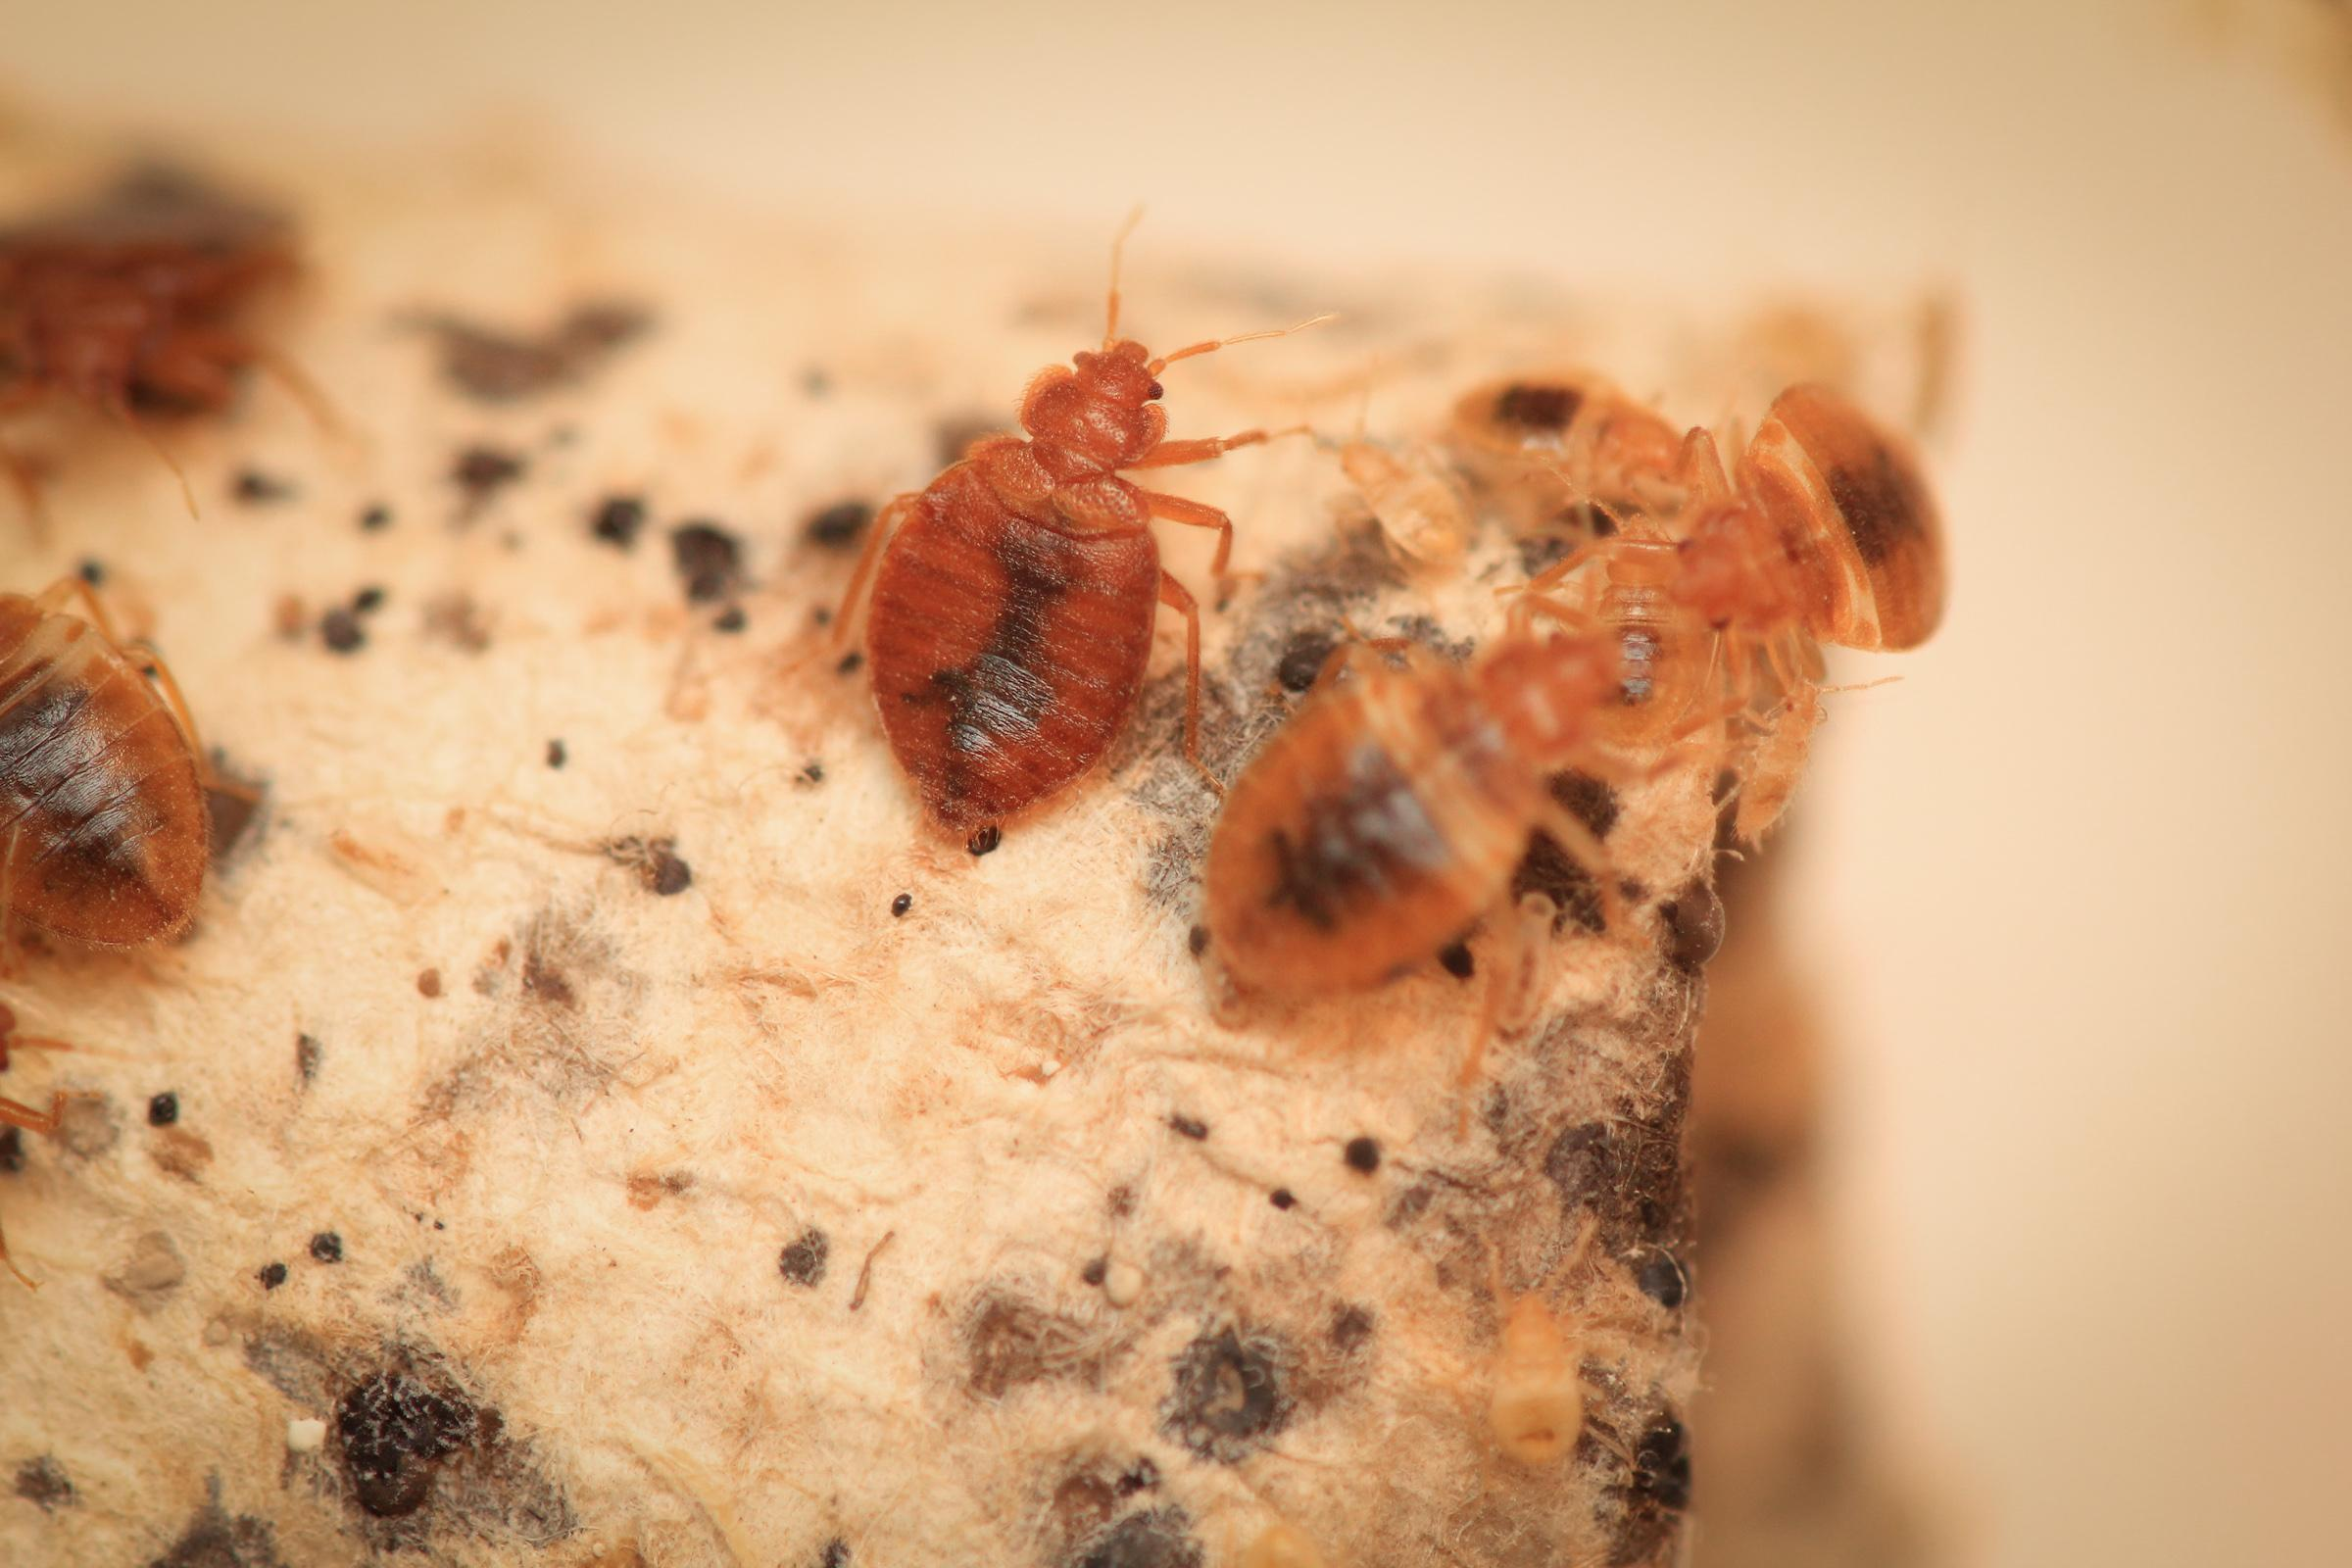 Is There A Powder To Kill Bed Bugs